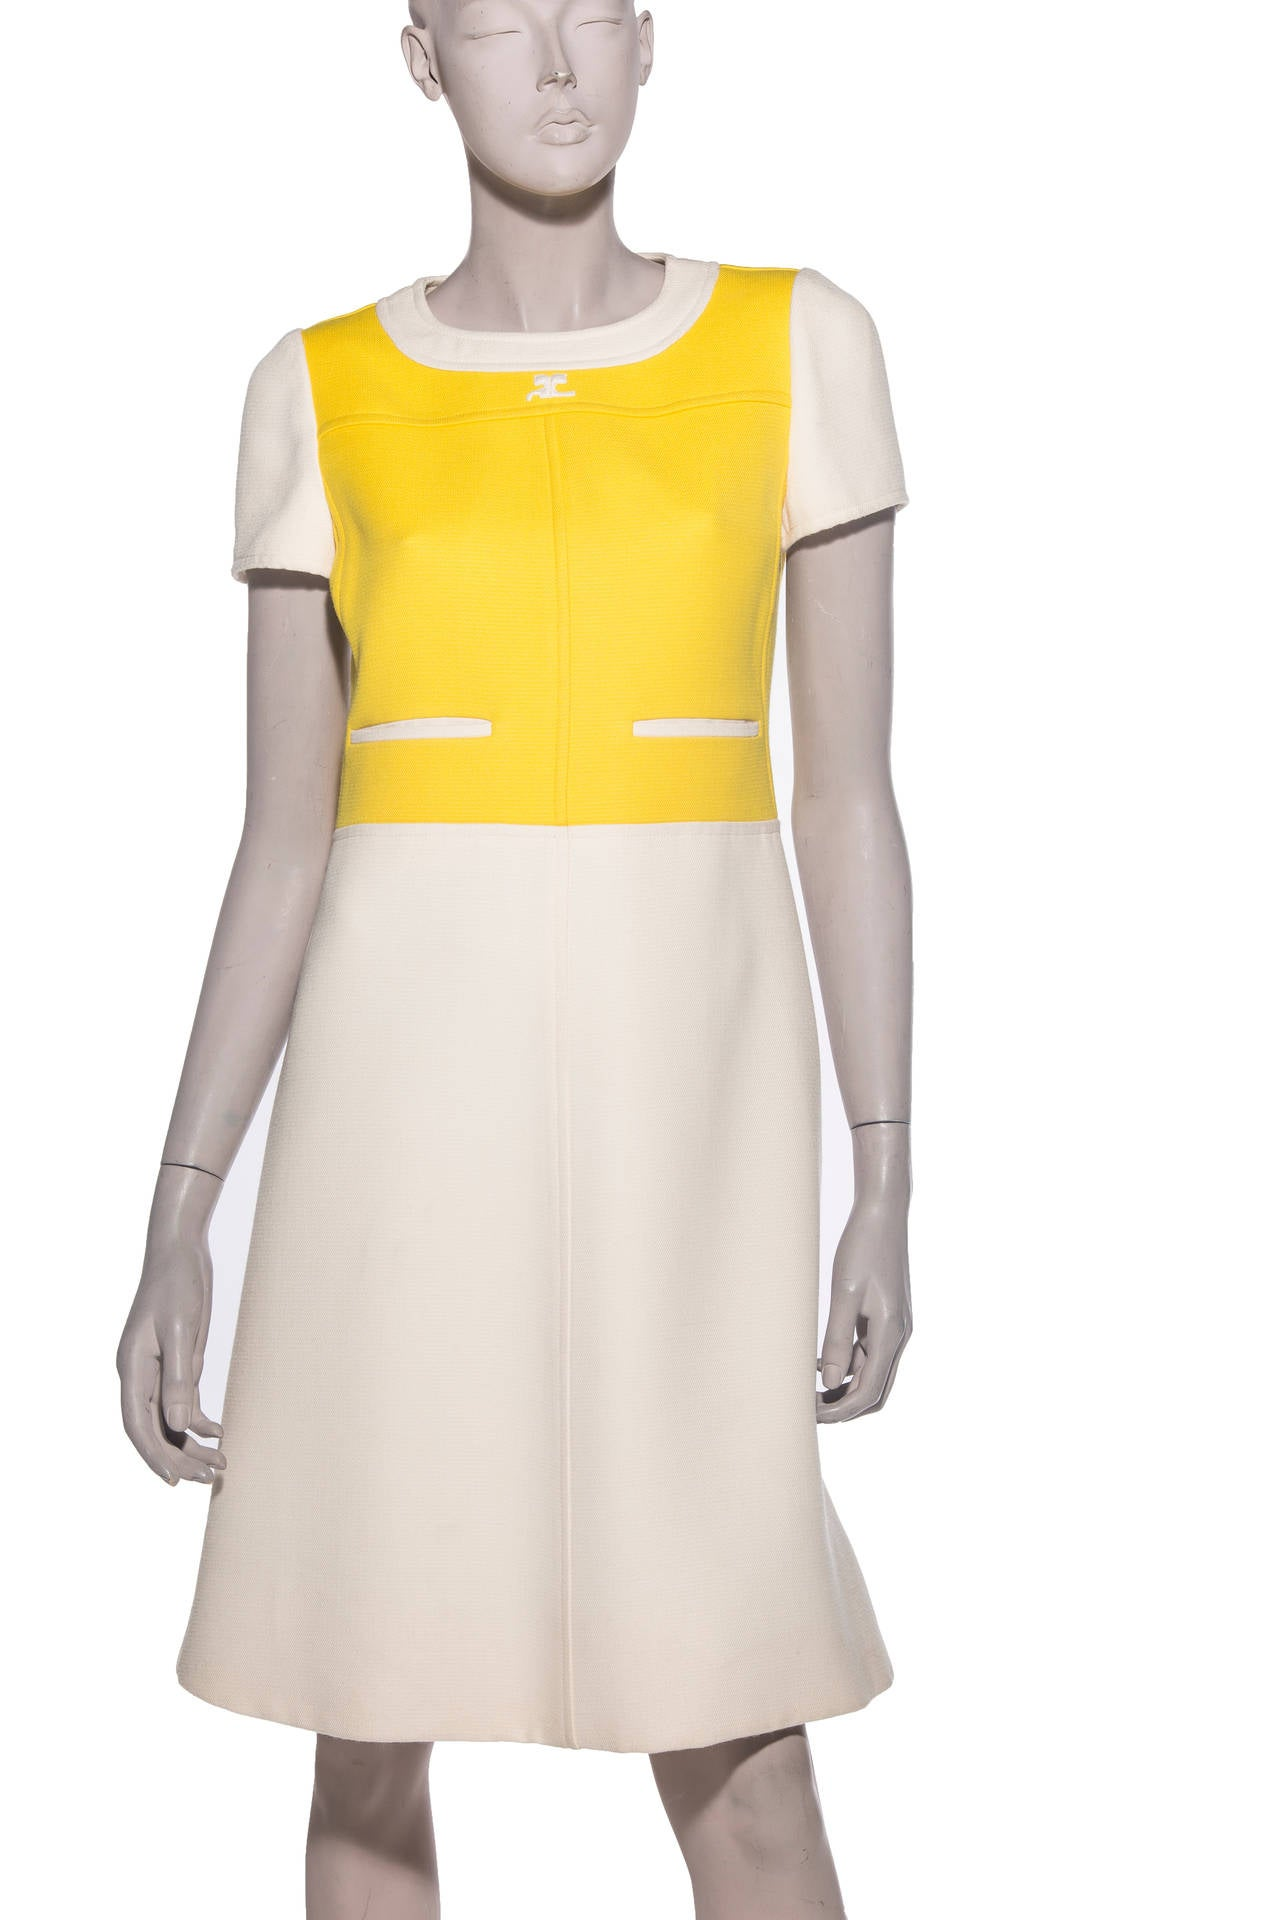 Andre Courreges  A-Line Dress With Cap Sleeves, Circa 1960's 2